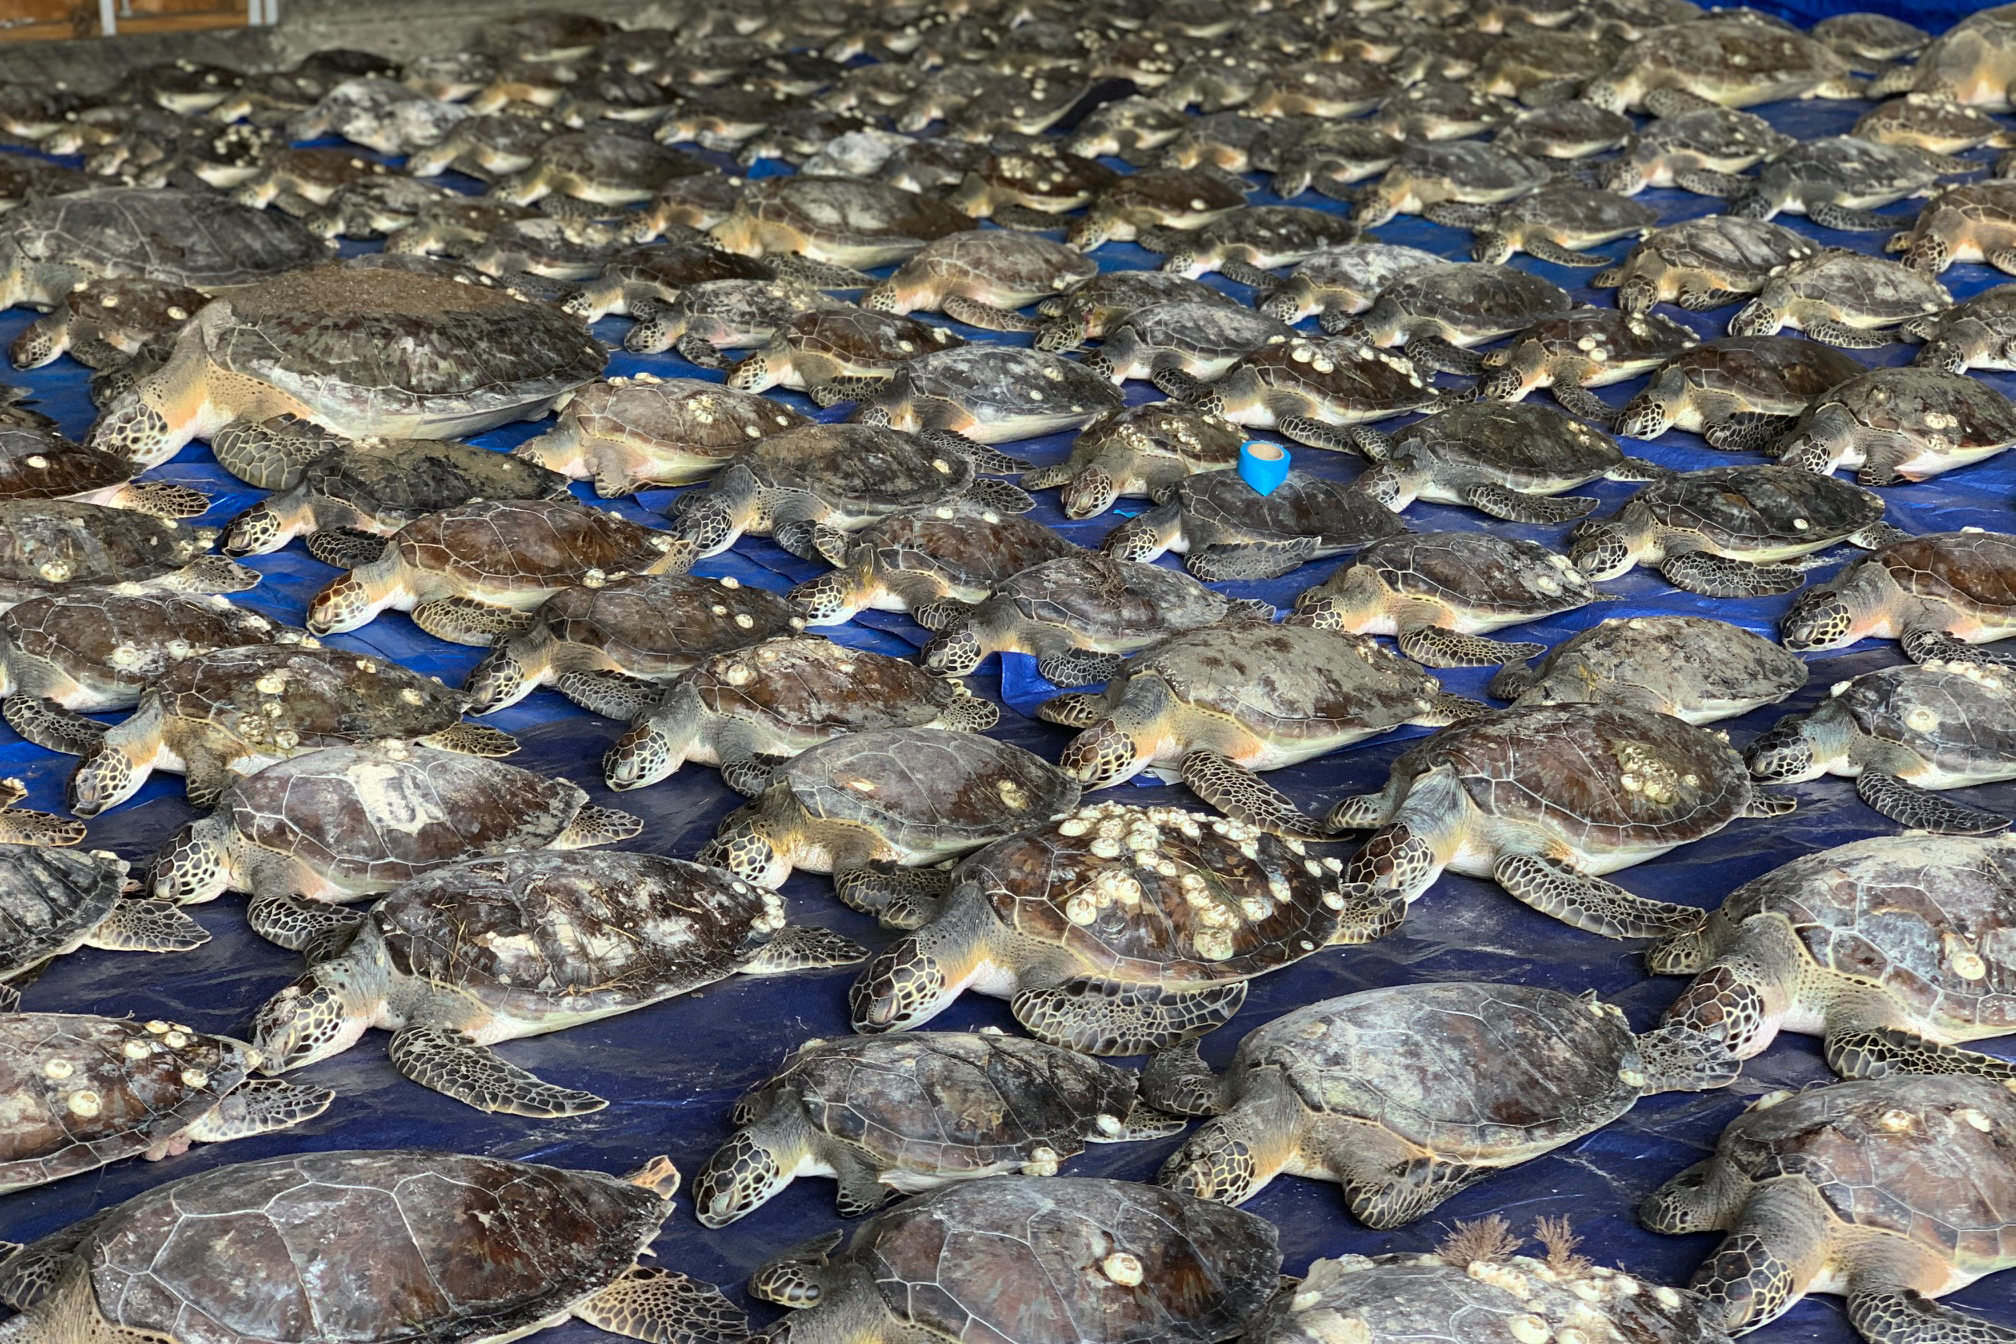 Hundreds of sea turtles on the floor of the South Padre Island Convention Centre